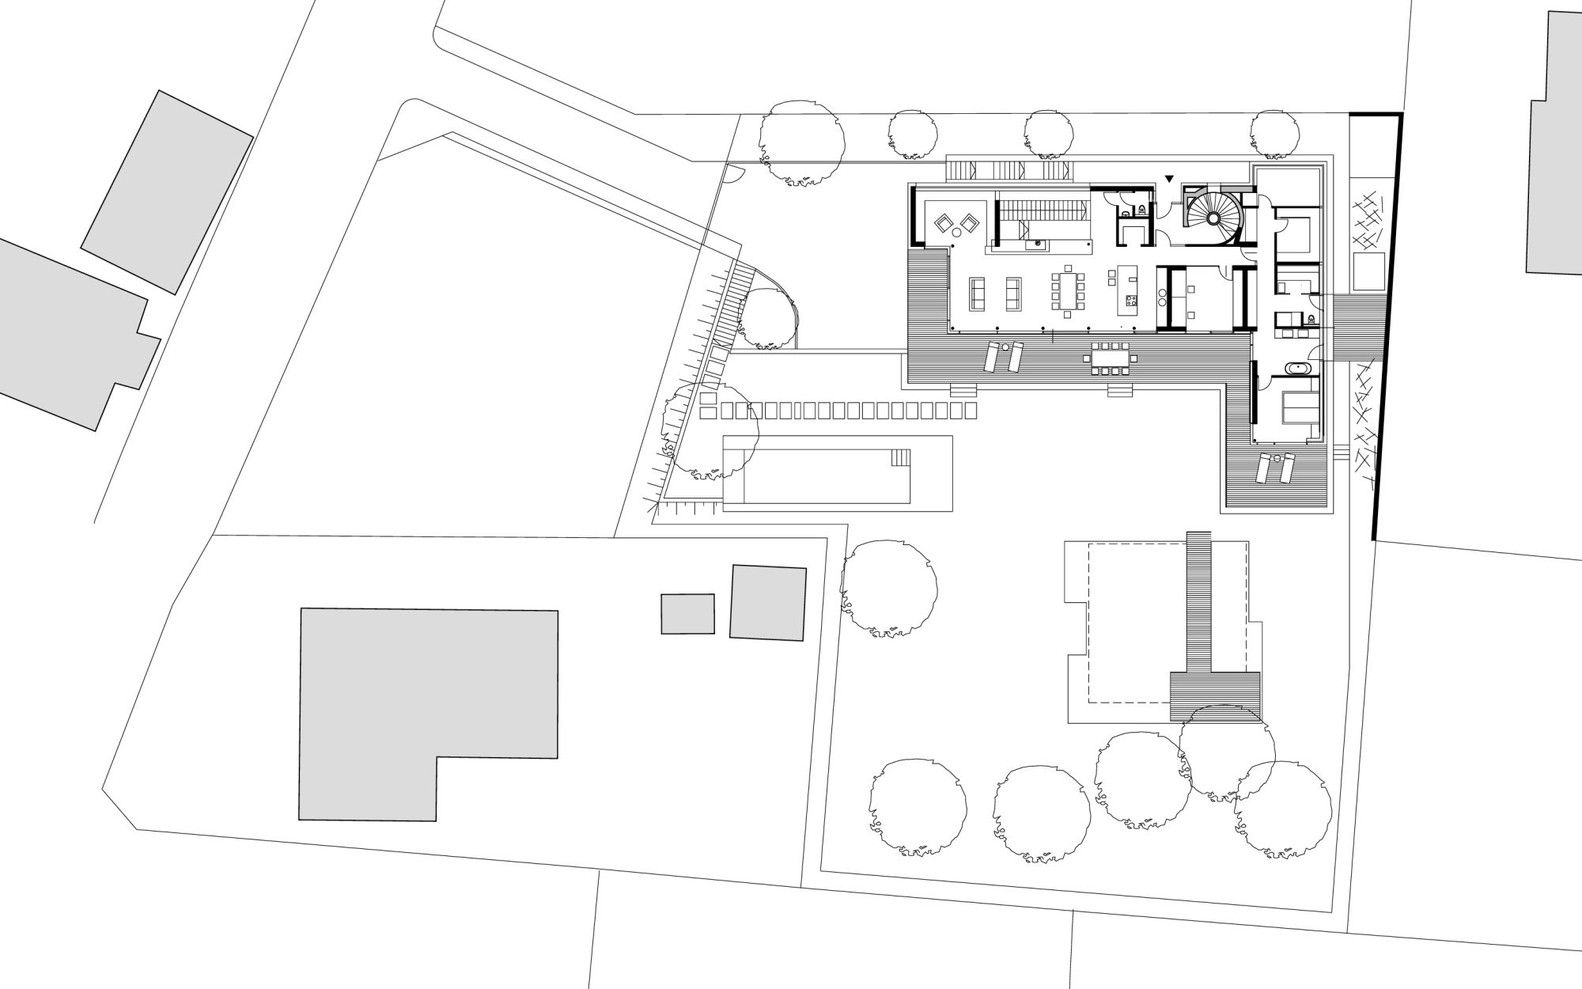 Gallery of Villa S / TWO IN A BOX - ARCHITEKTEN ZT GMBH - 9 | Villas on icon house, chart house, label house,